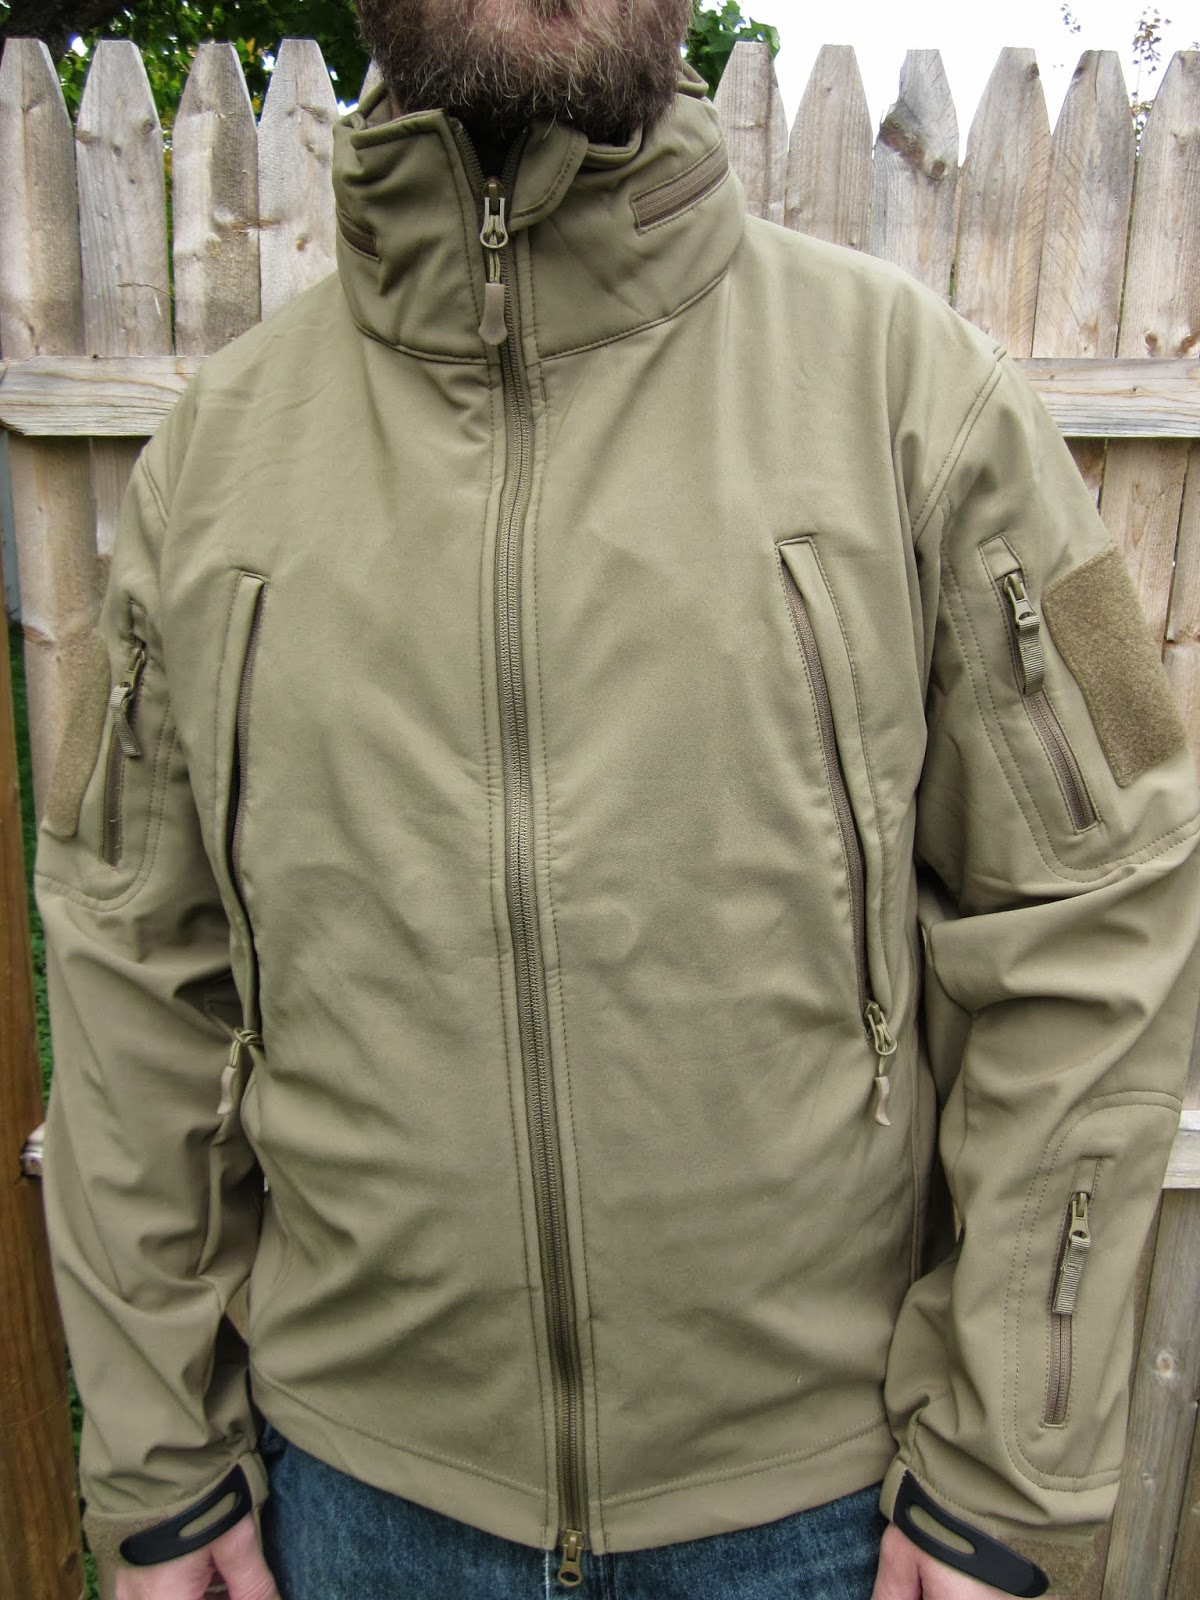 Ock softshell jacke test